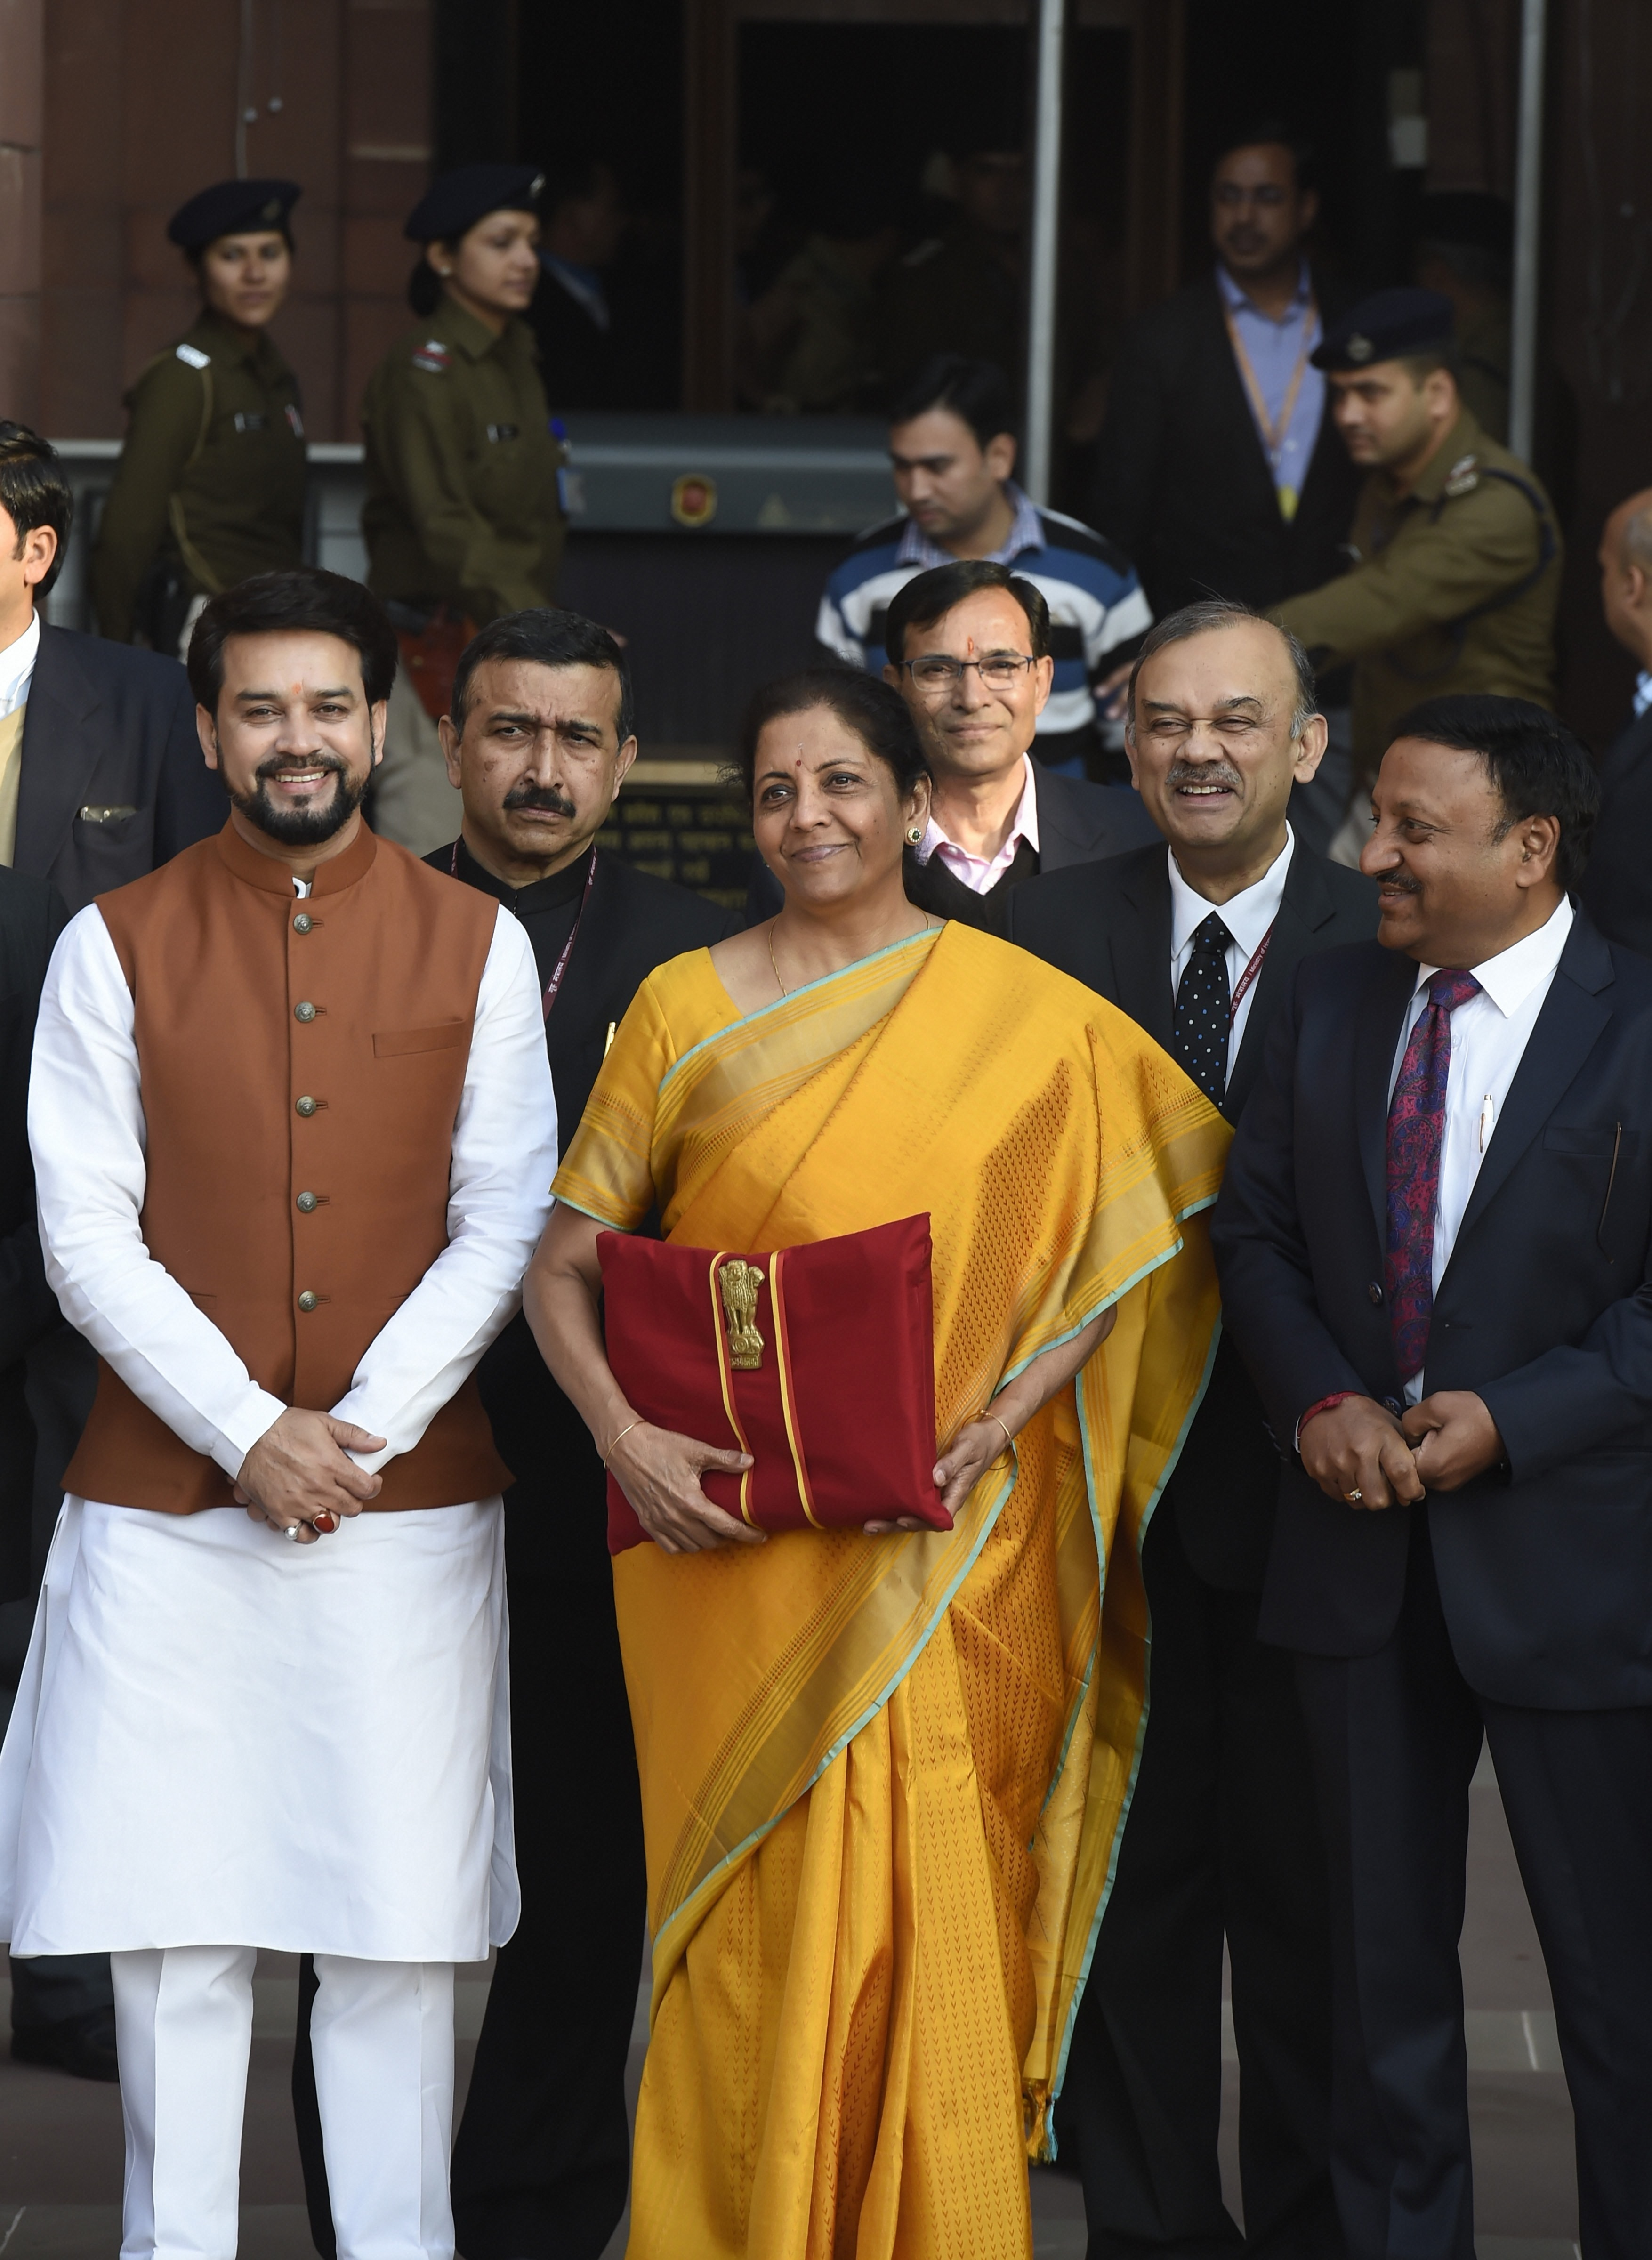 Union finance minister Nirmala Sitharaman, holding a folder containing the Union Budget documents, poses for photographers along with her deputy Anurag Thakur and a team of officials, outside the ministry of finance, North Block in New Delhi, Saturday, February 1, 2020.